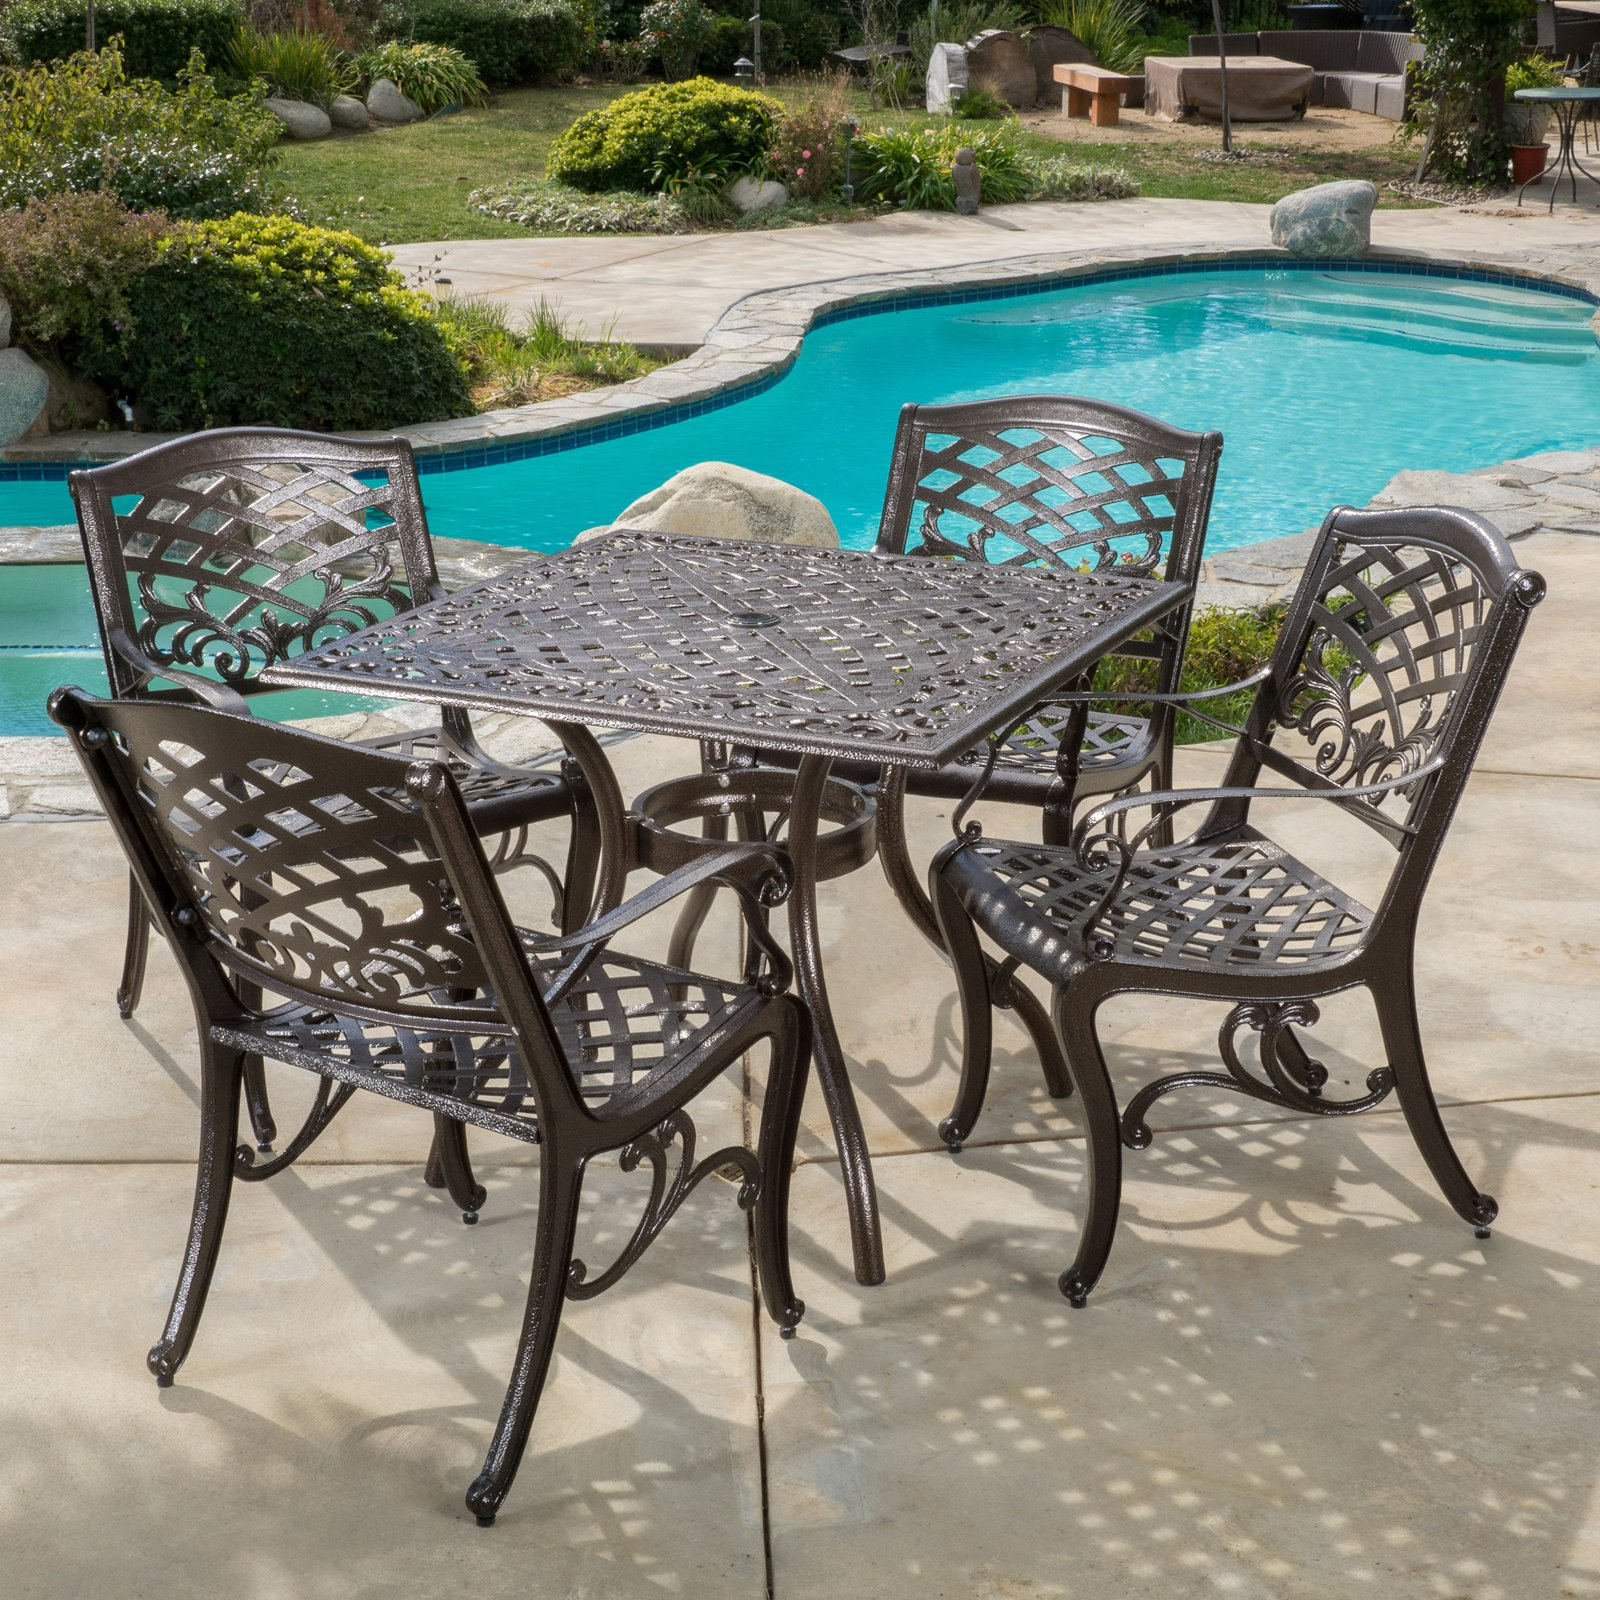 Michelle Aluminum 5 Piece Square Patio Dining Room Set by Best Selling Home Decor Furniture LLC